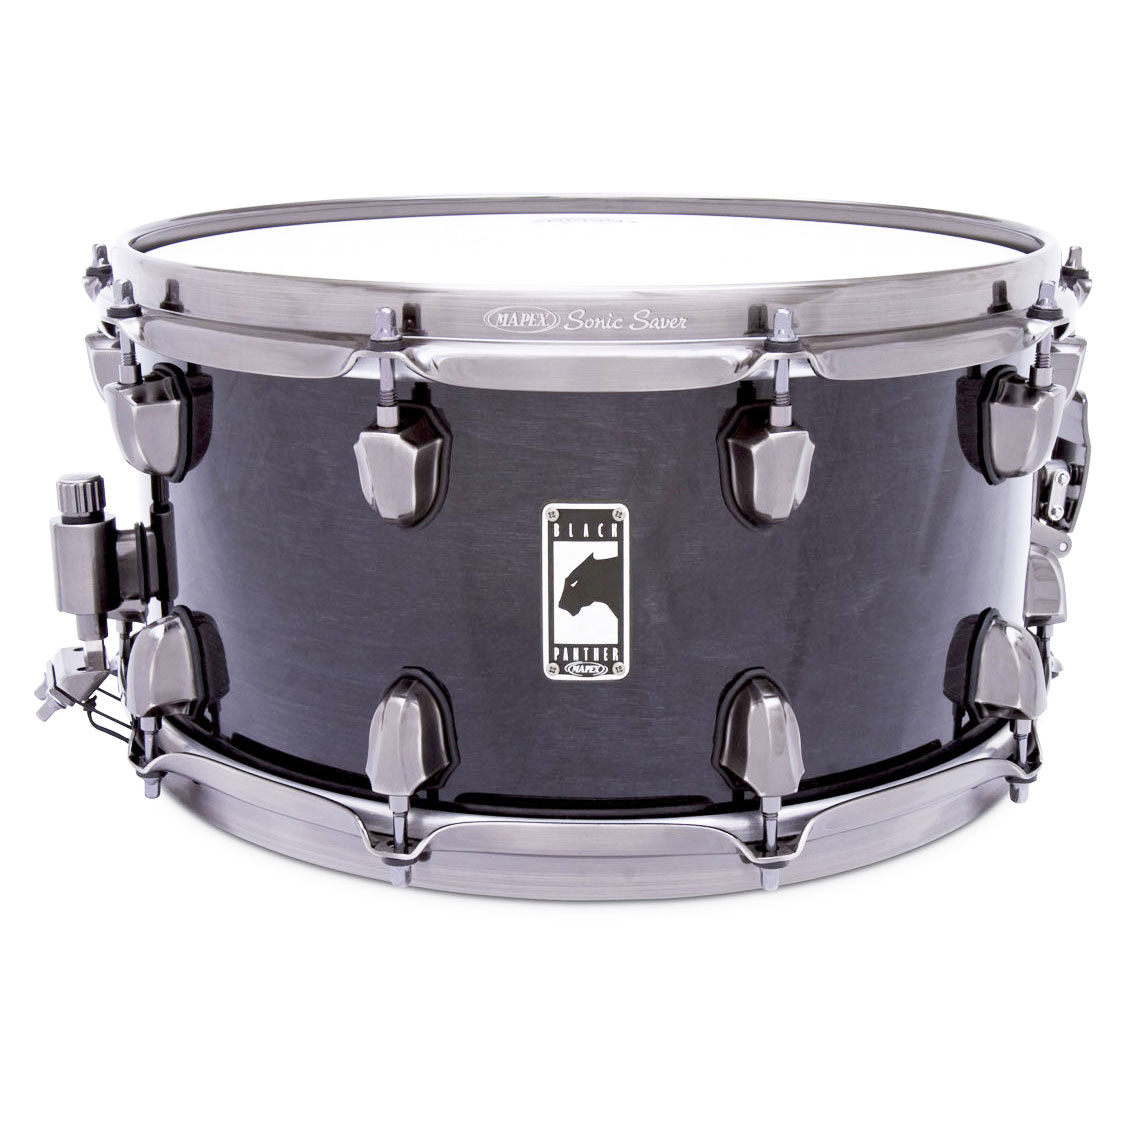 "Mapex 7"" x 14"" Black Panther Phatbob Snare Drum"